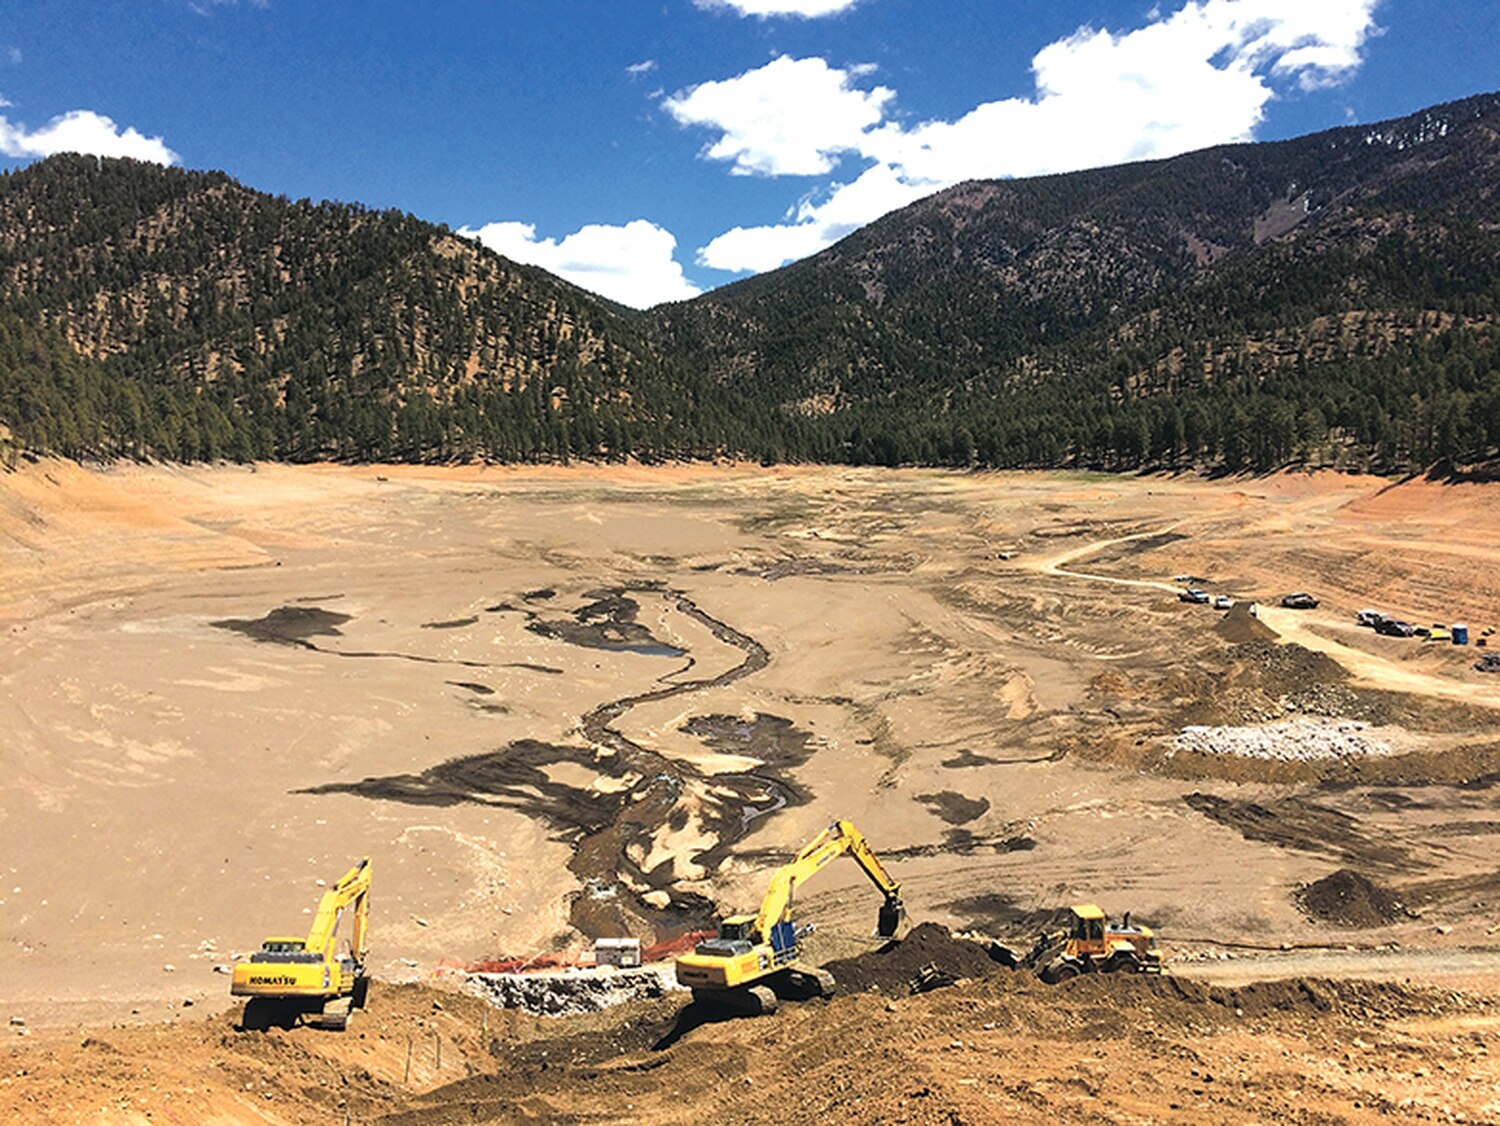 Repairs to the McClure Reservoir required the city to let all the water flow downstream. Together, the city's reservoirs can hold more than 1.3 billion gallons.